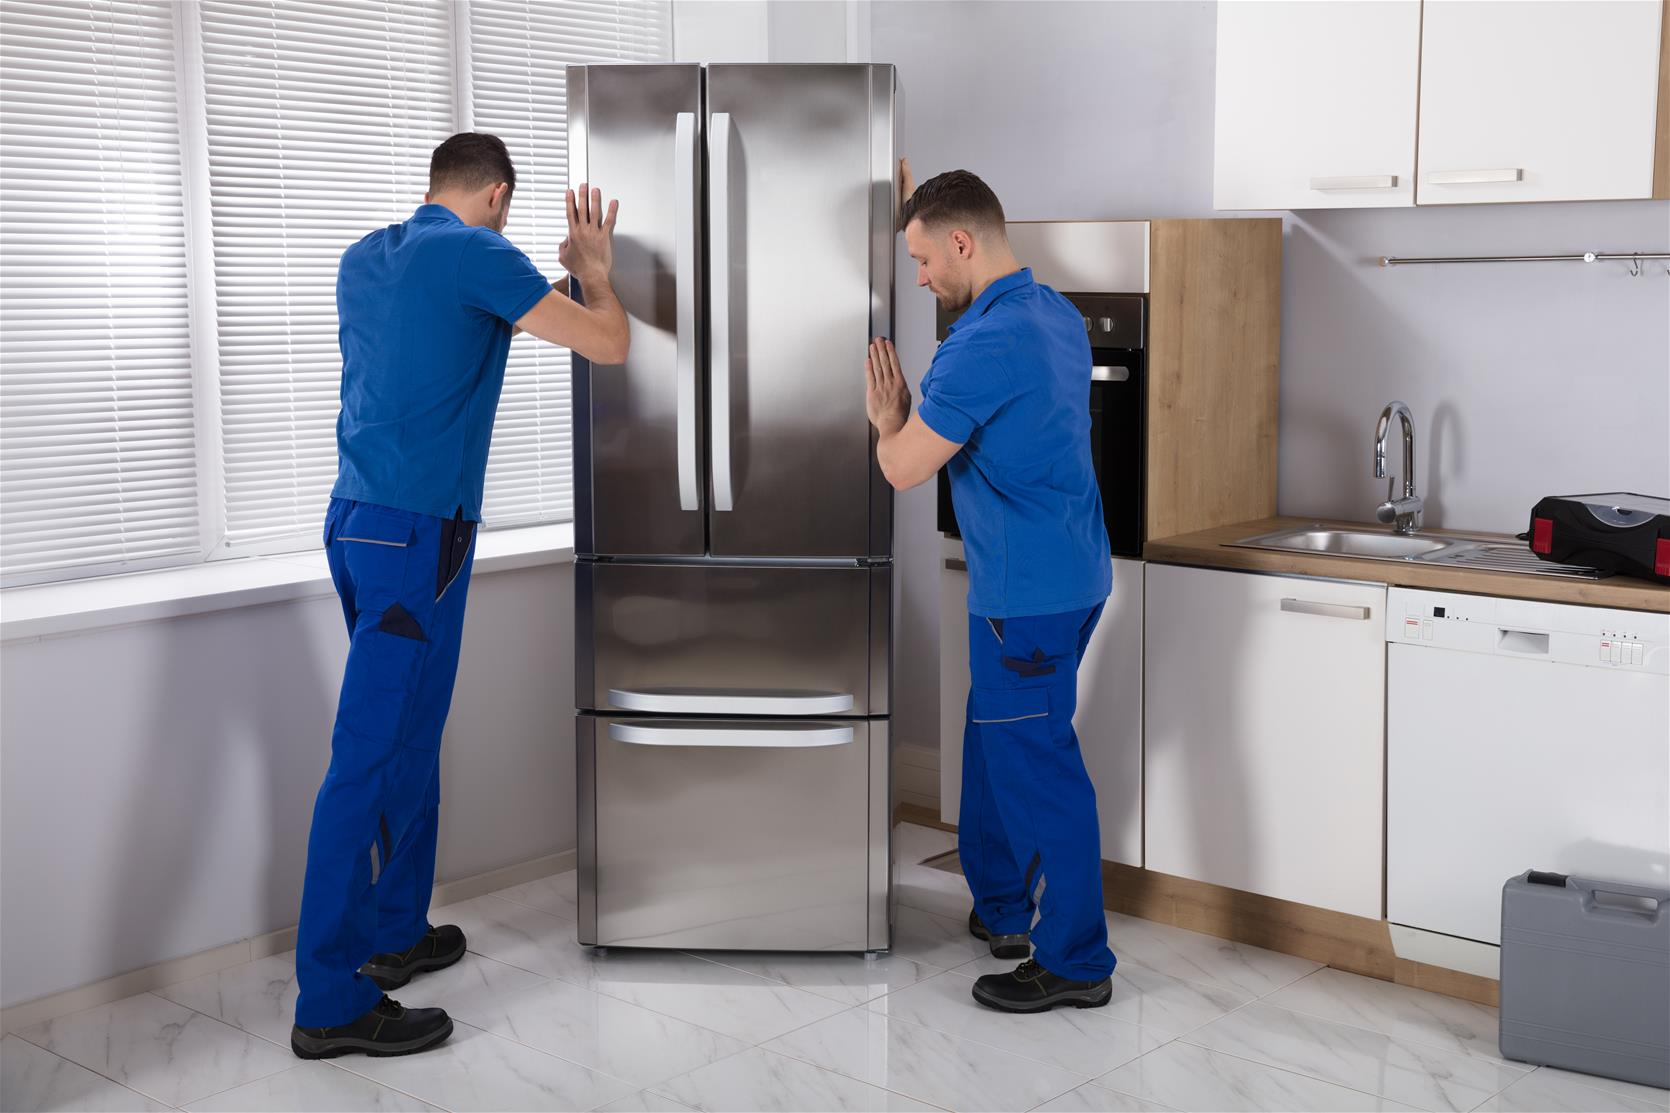 Men moving Refrigerator